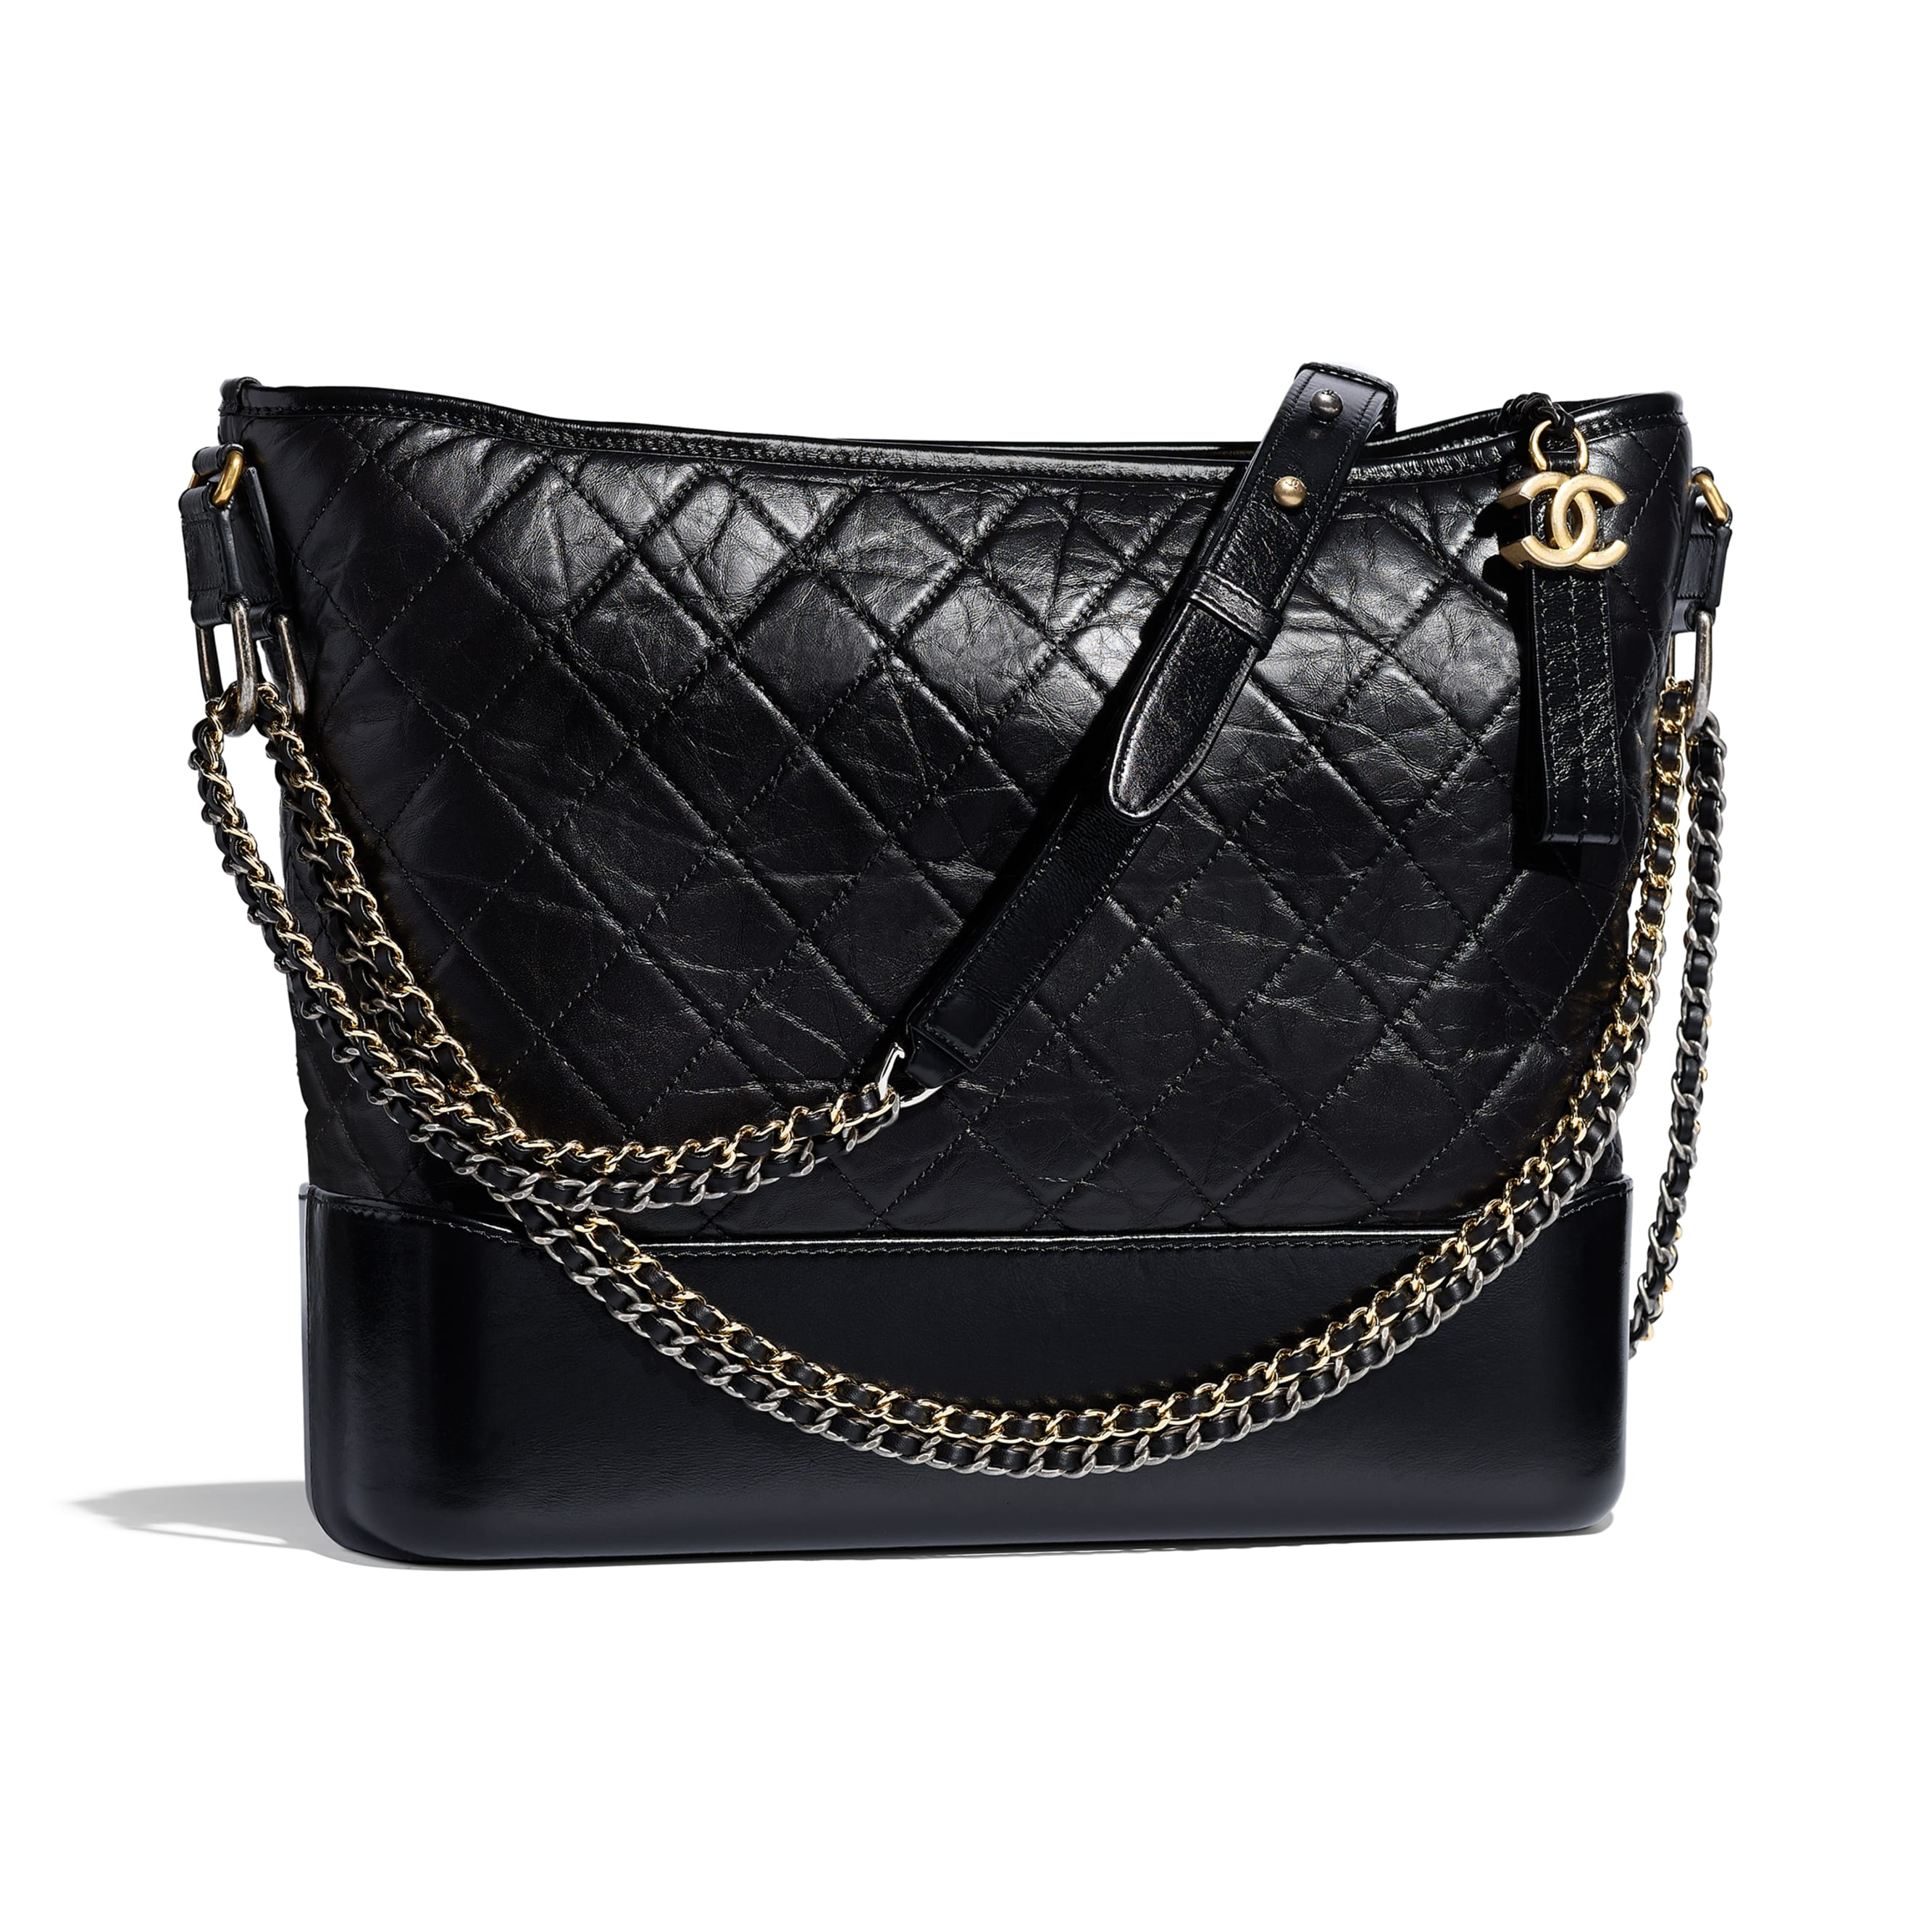 CHANEL'S GABRIELLE Maxi Hobo - Black - Aged Calfskin, Smooth Calfskin, Silver-Tone & Gold-Tone Metal - Other view - see standard sized version